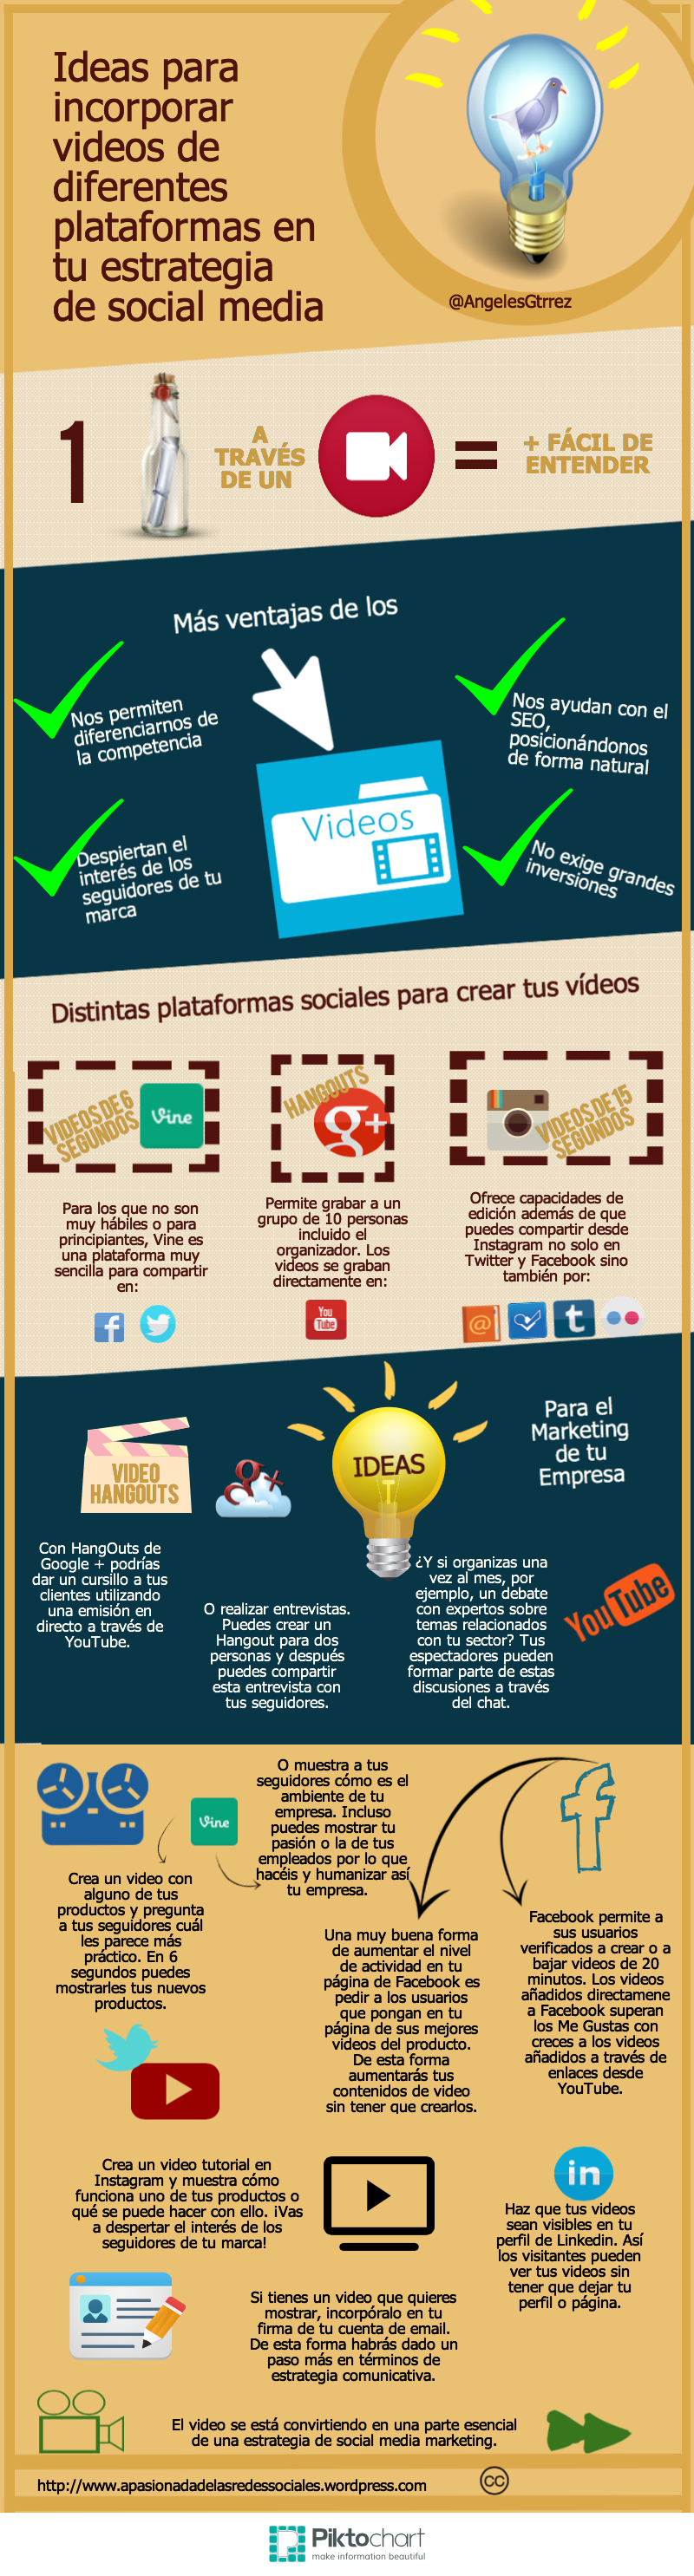 Ideas estrategia videomarketing